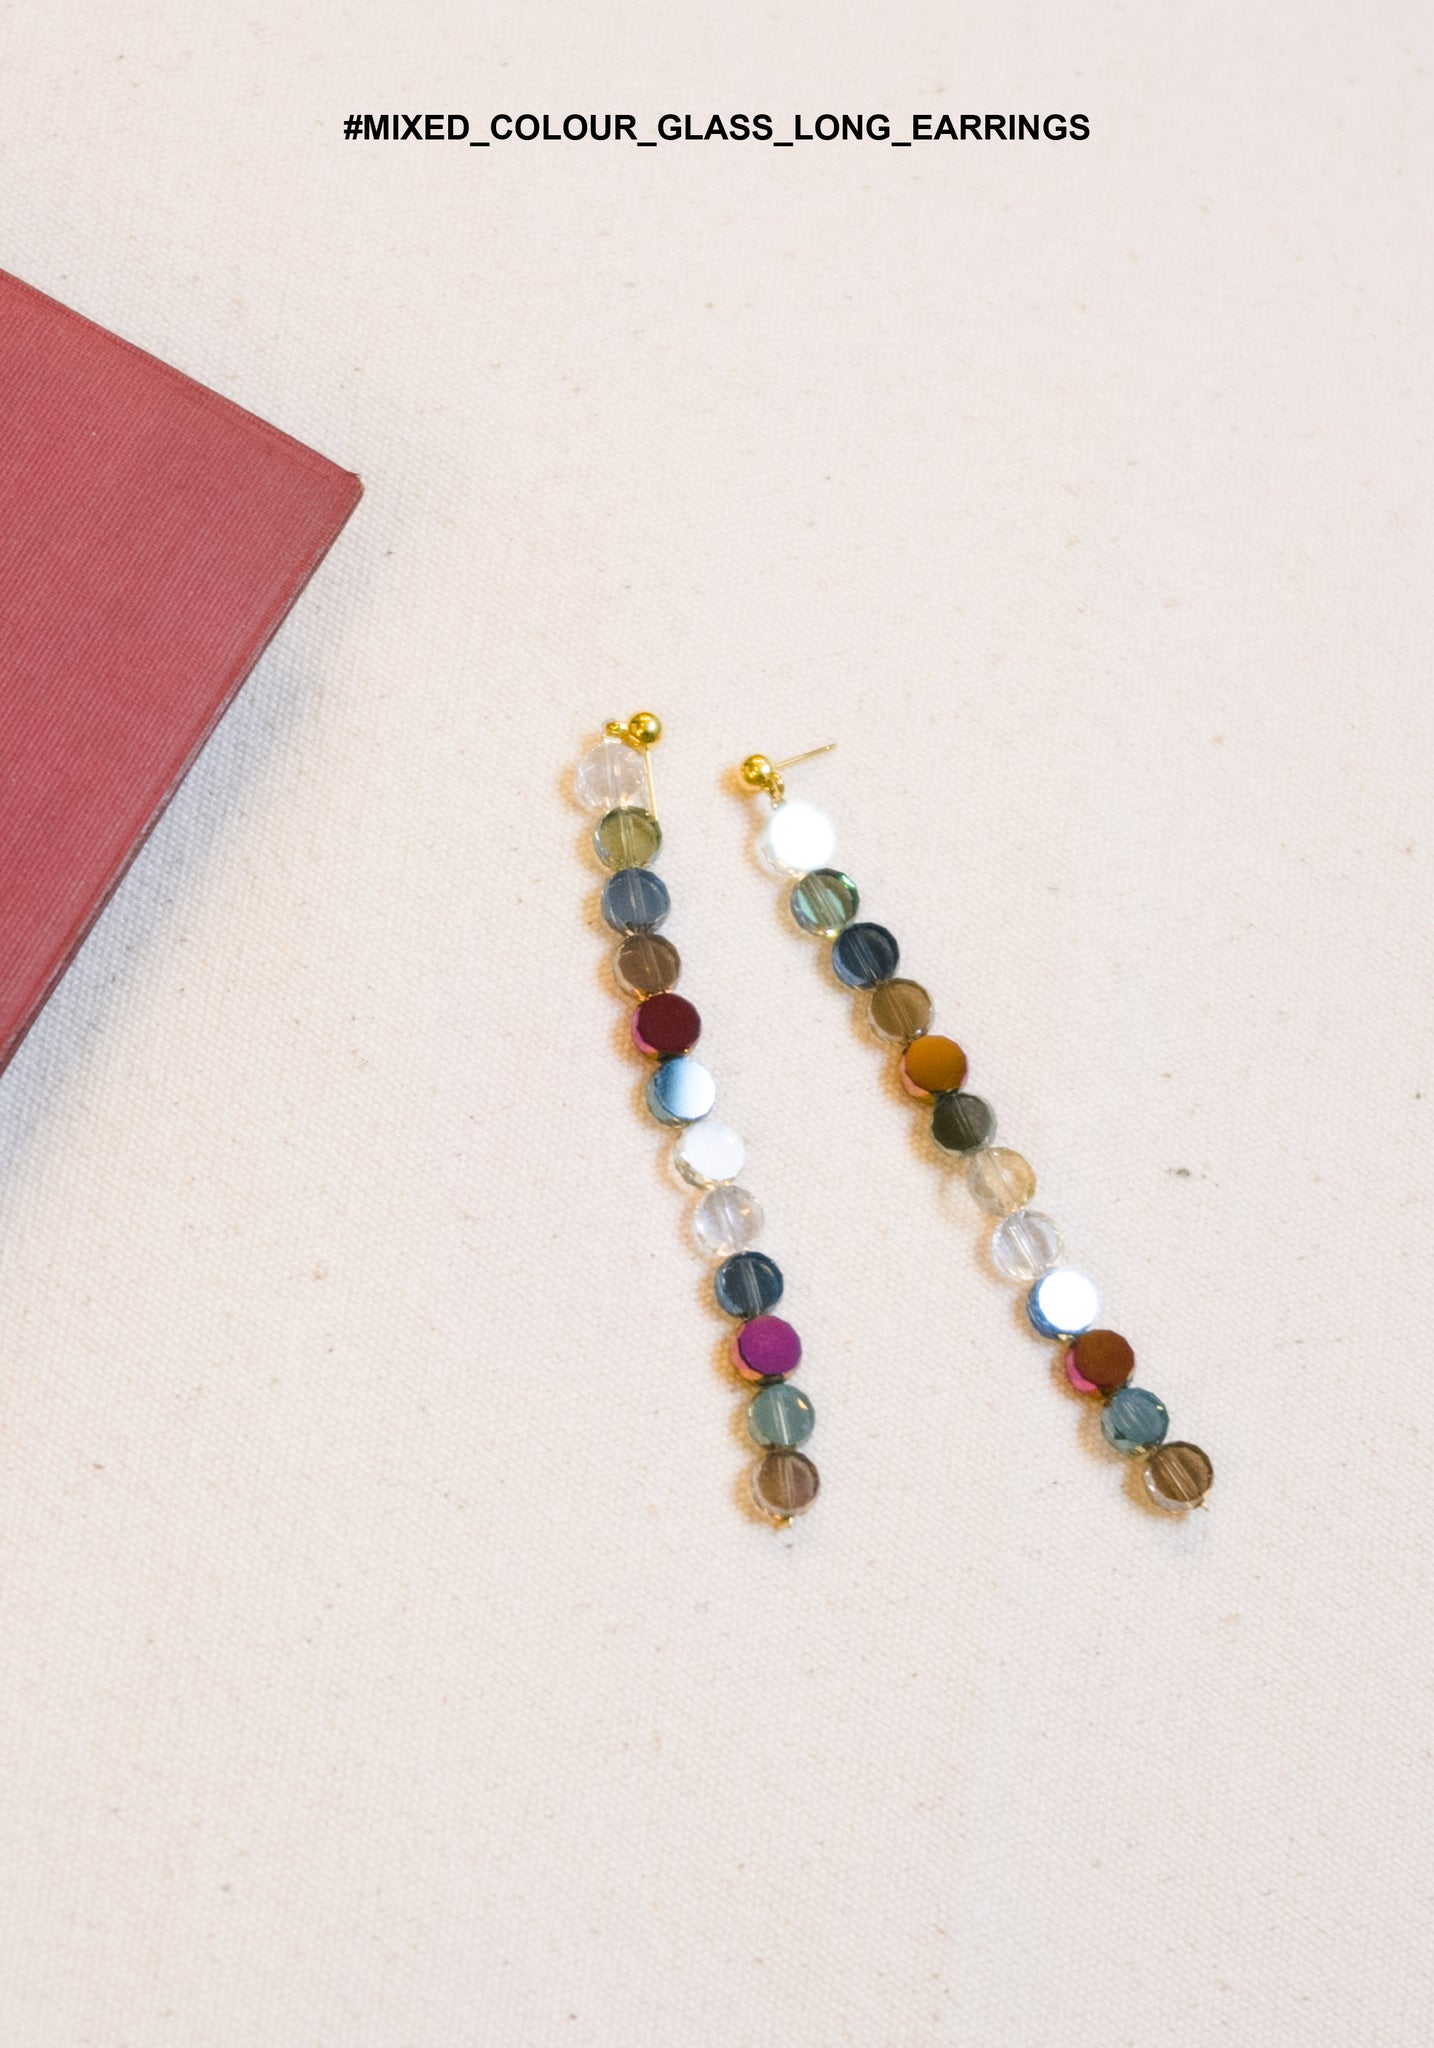 Mixed Colour Glass Long Earrings - whoami